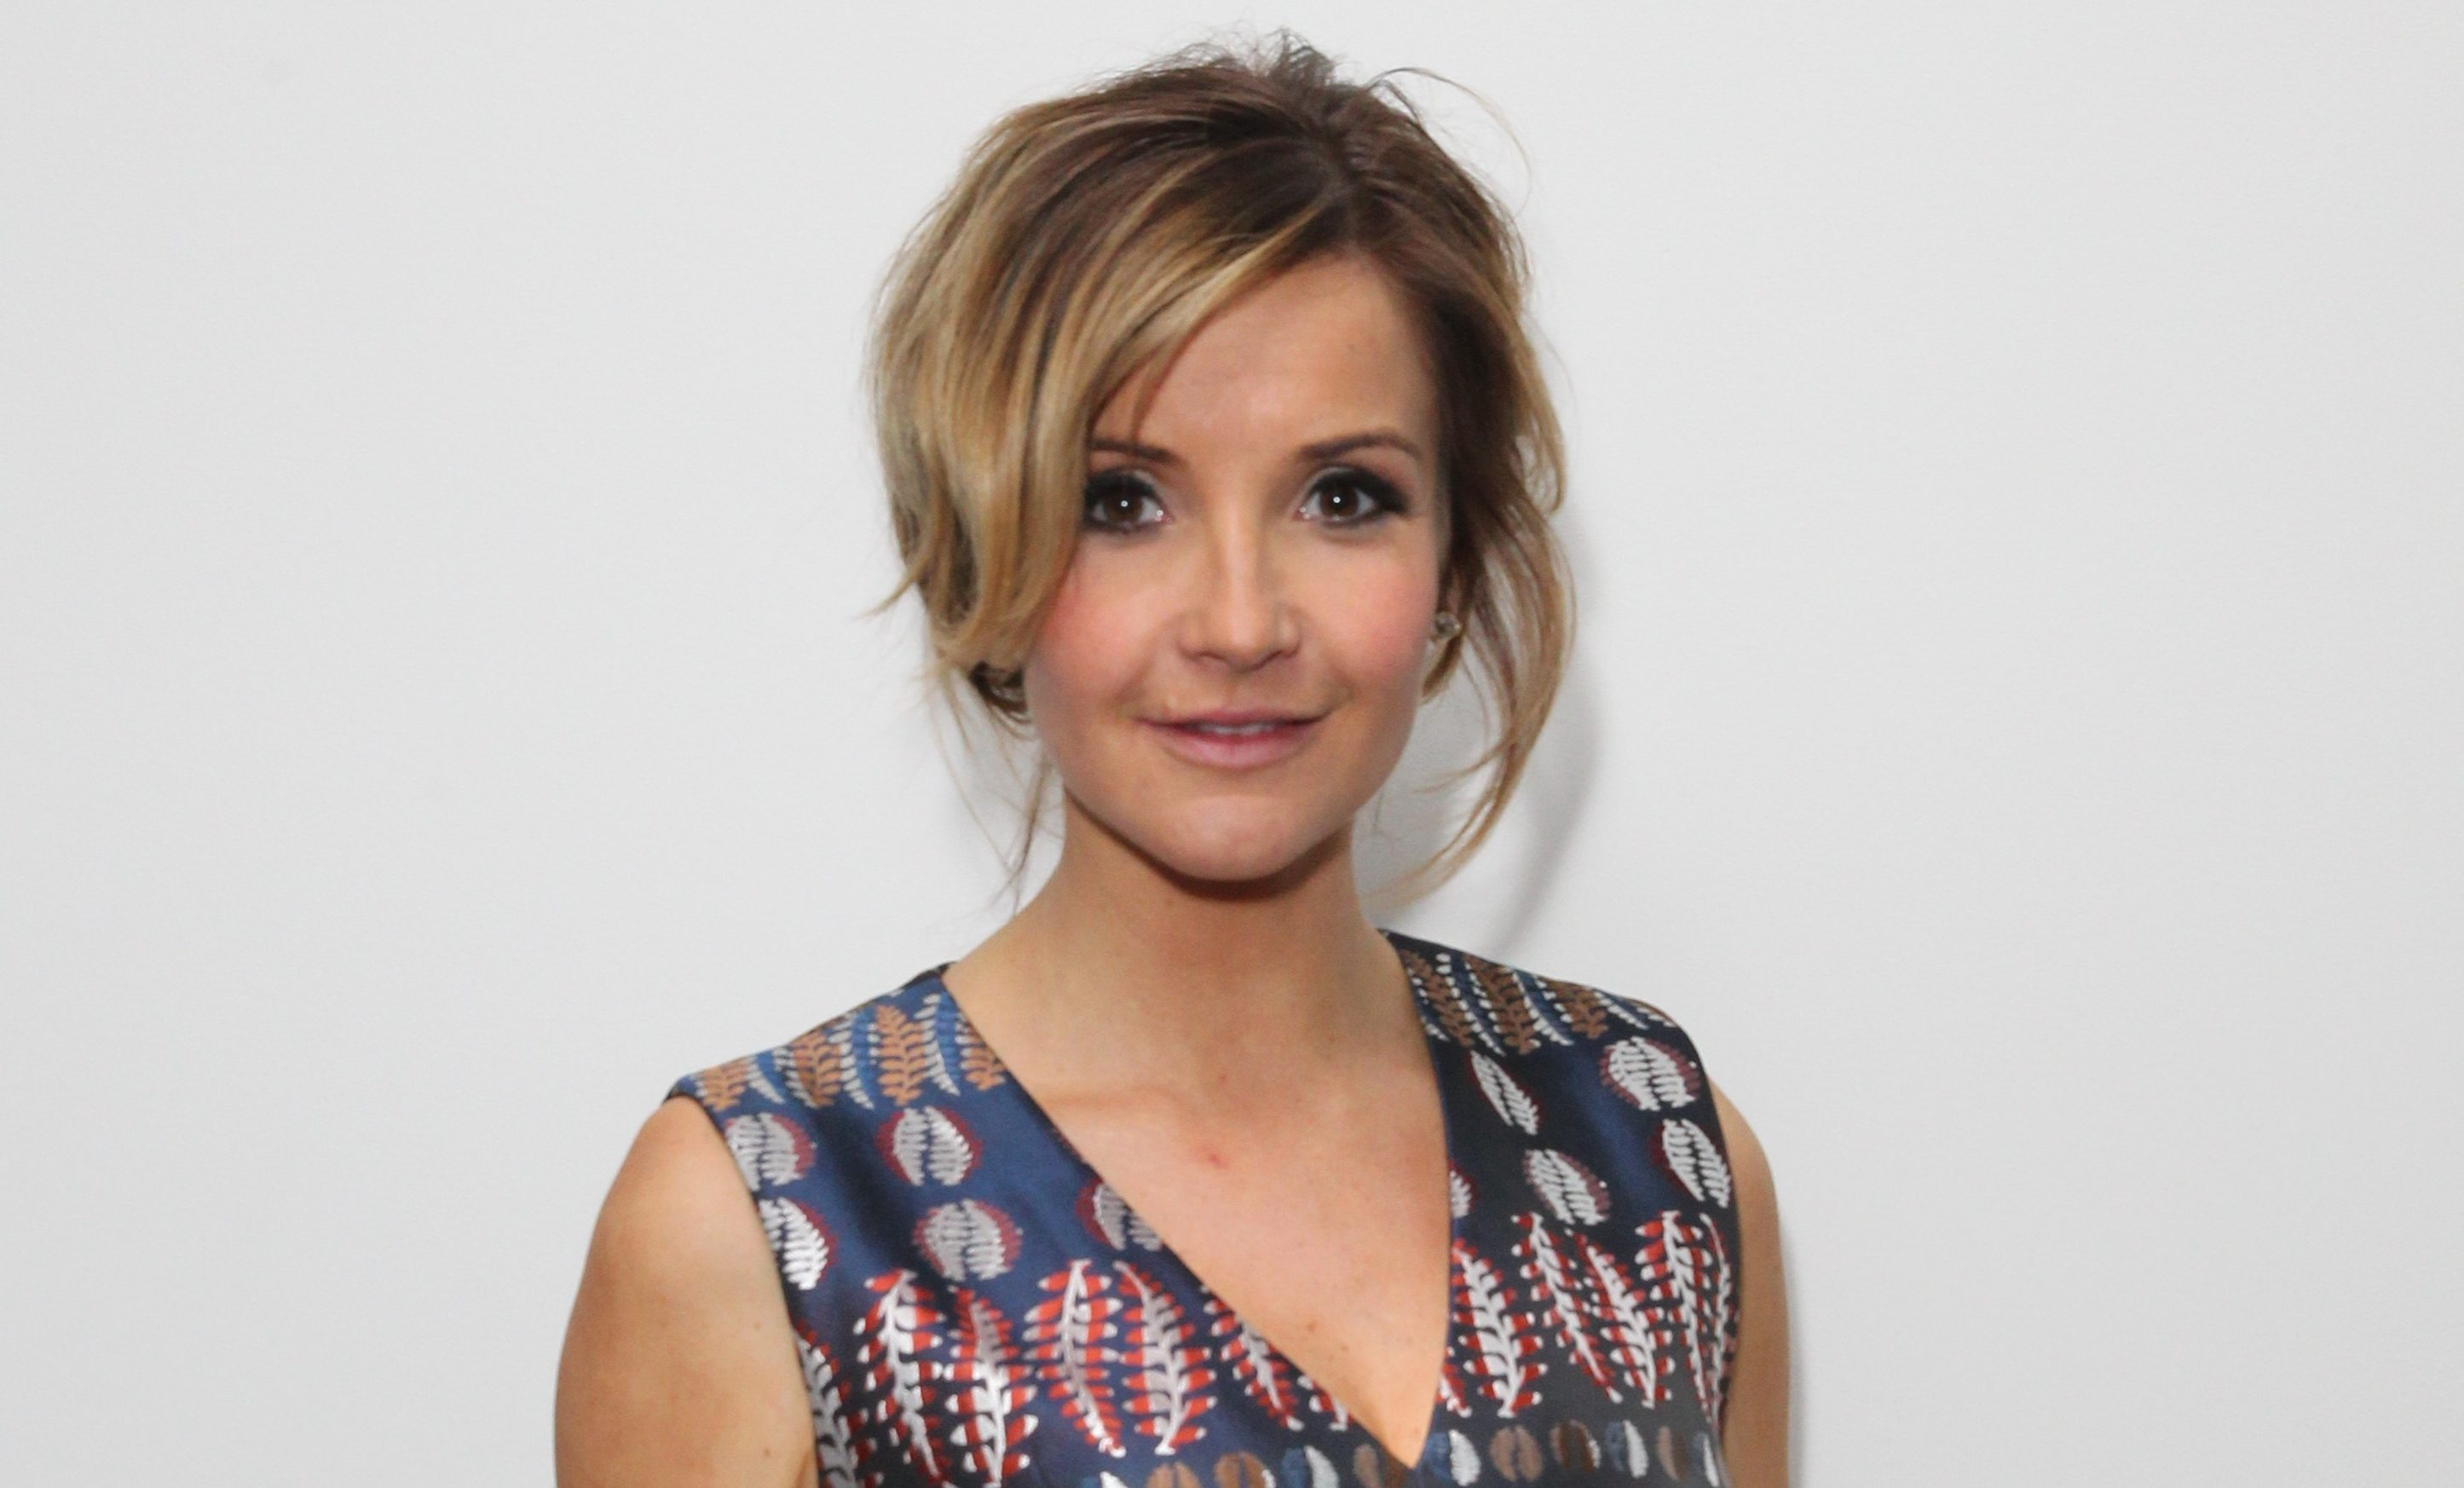 TheFappening Helen Skelton nudes (18 foto and video), Tits, Hot, Instagram, legs 2015